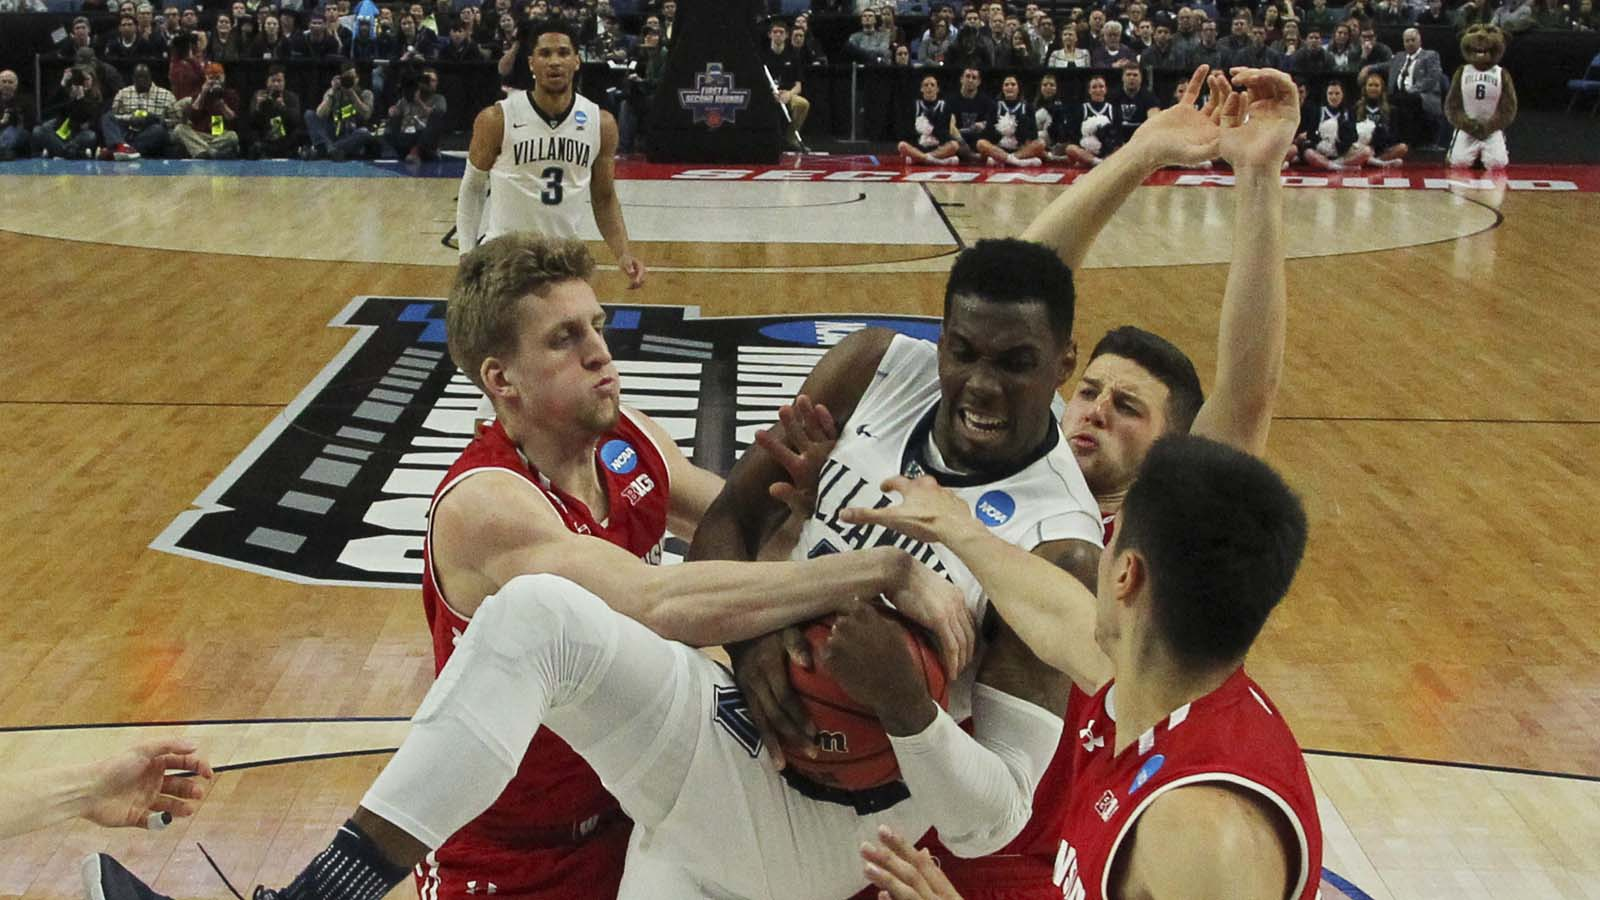 Villanova forward Darryl Reynolds grabs a rebound against Wisconsin guard Brevin Pritzl (left), guard Zak Showalter (center) and guard Bronson Koenig (right) during the first half of a second-round men's college basketball game in the NCAA Tournament, Sat